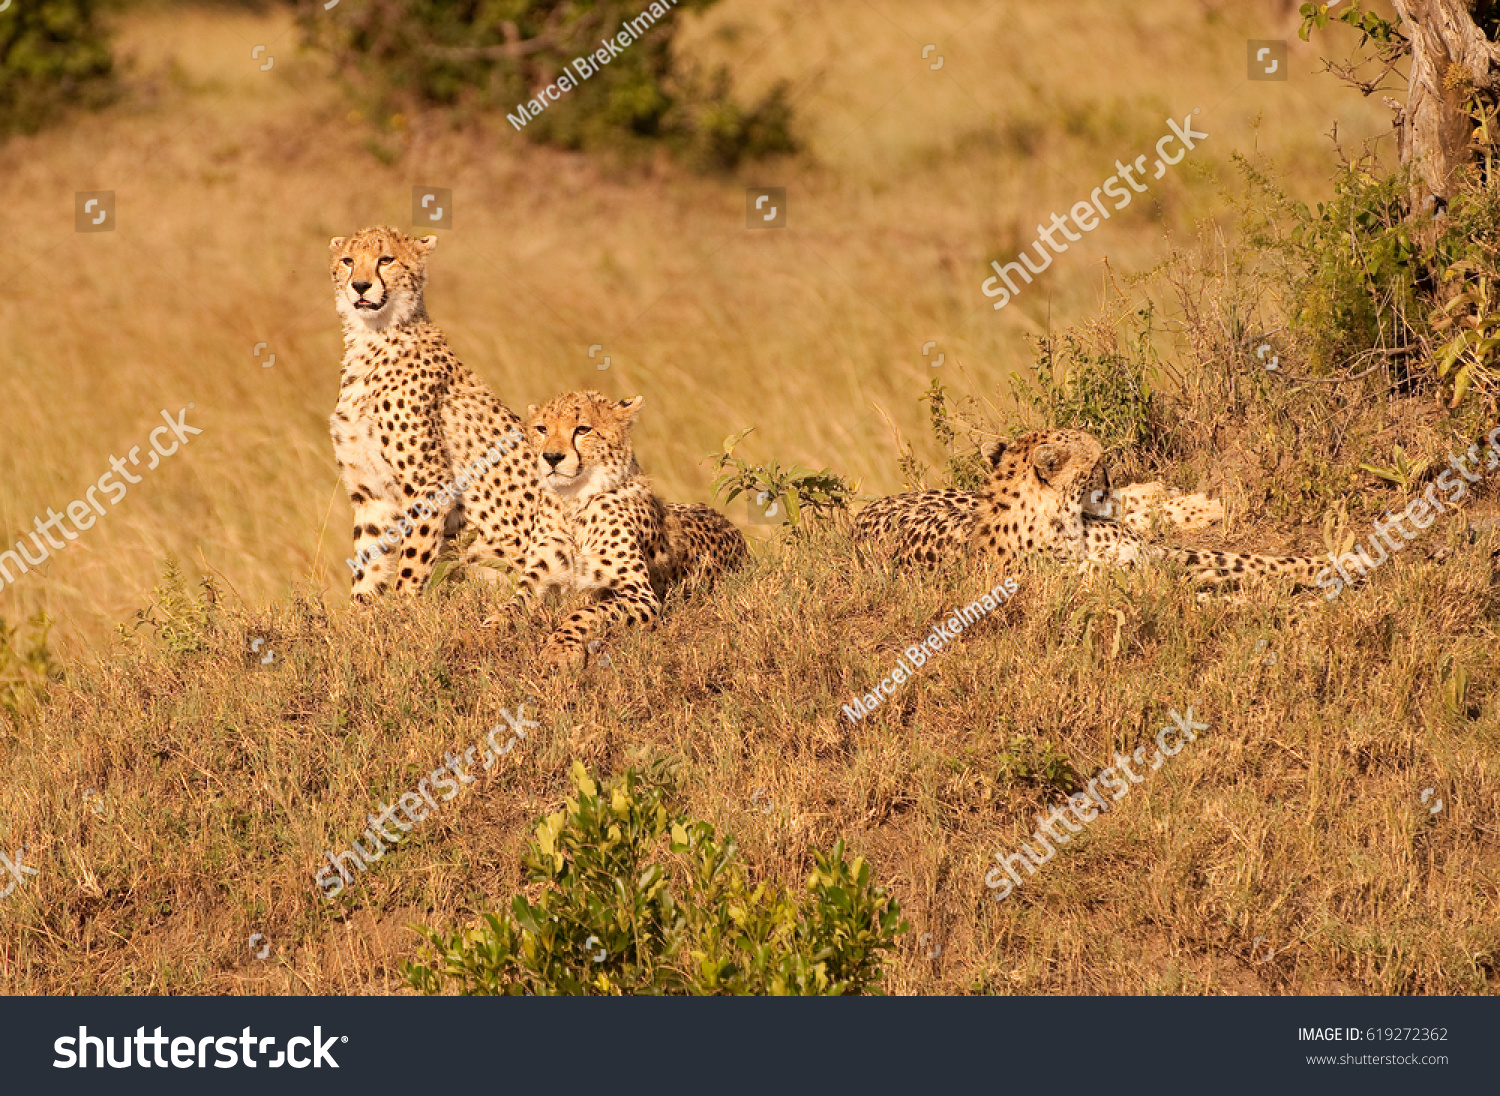 Cheetah family in Kenya